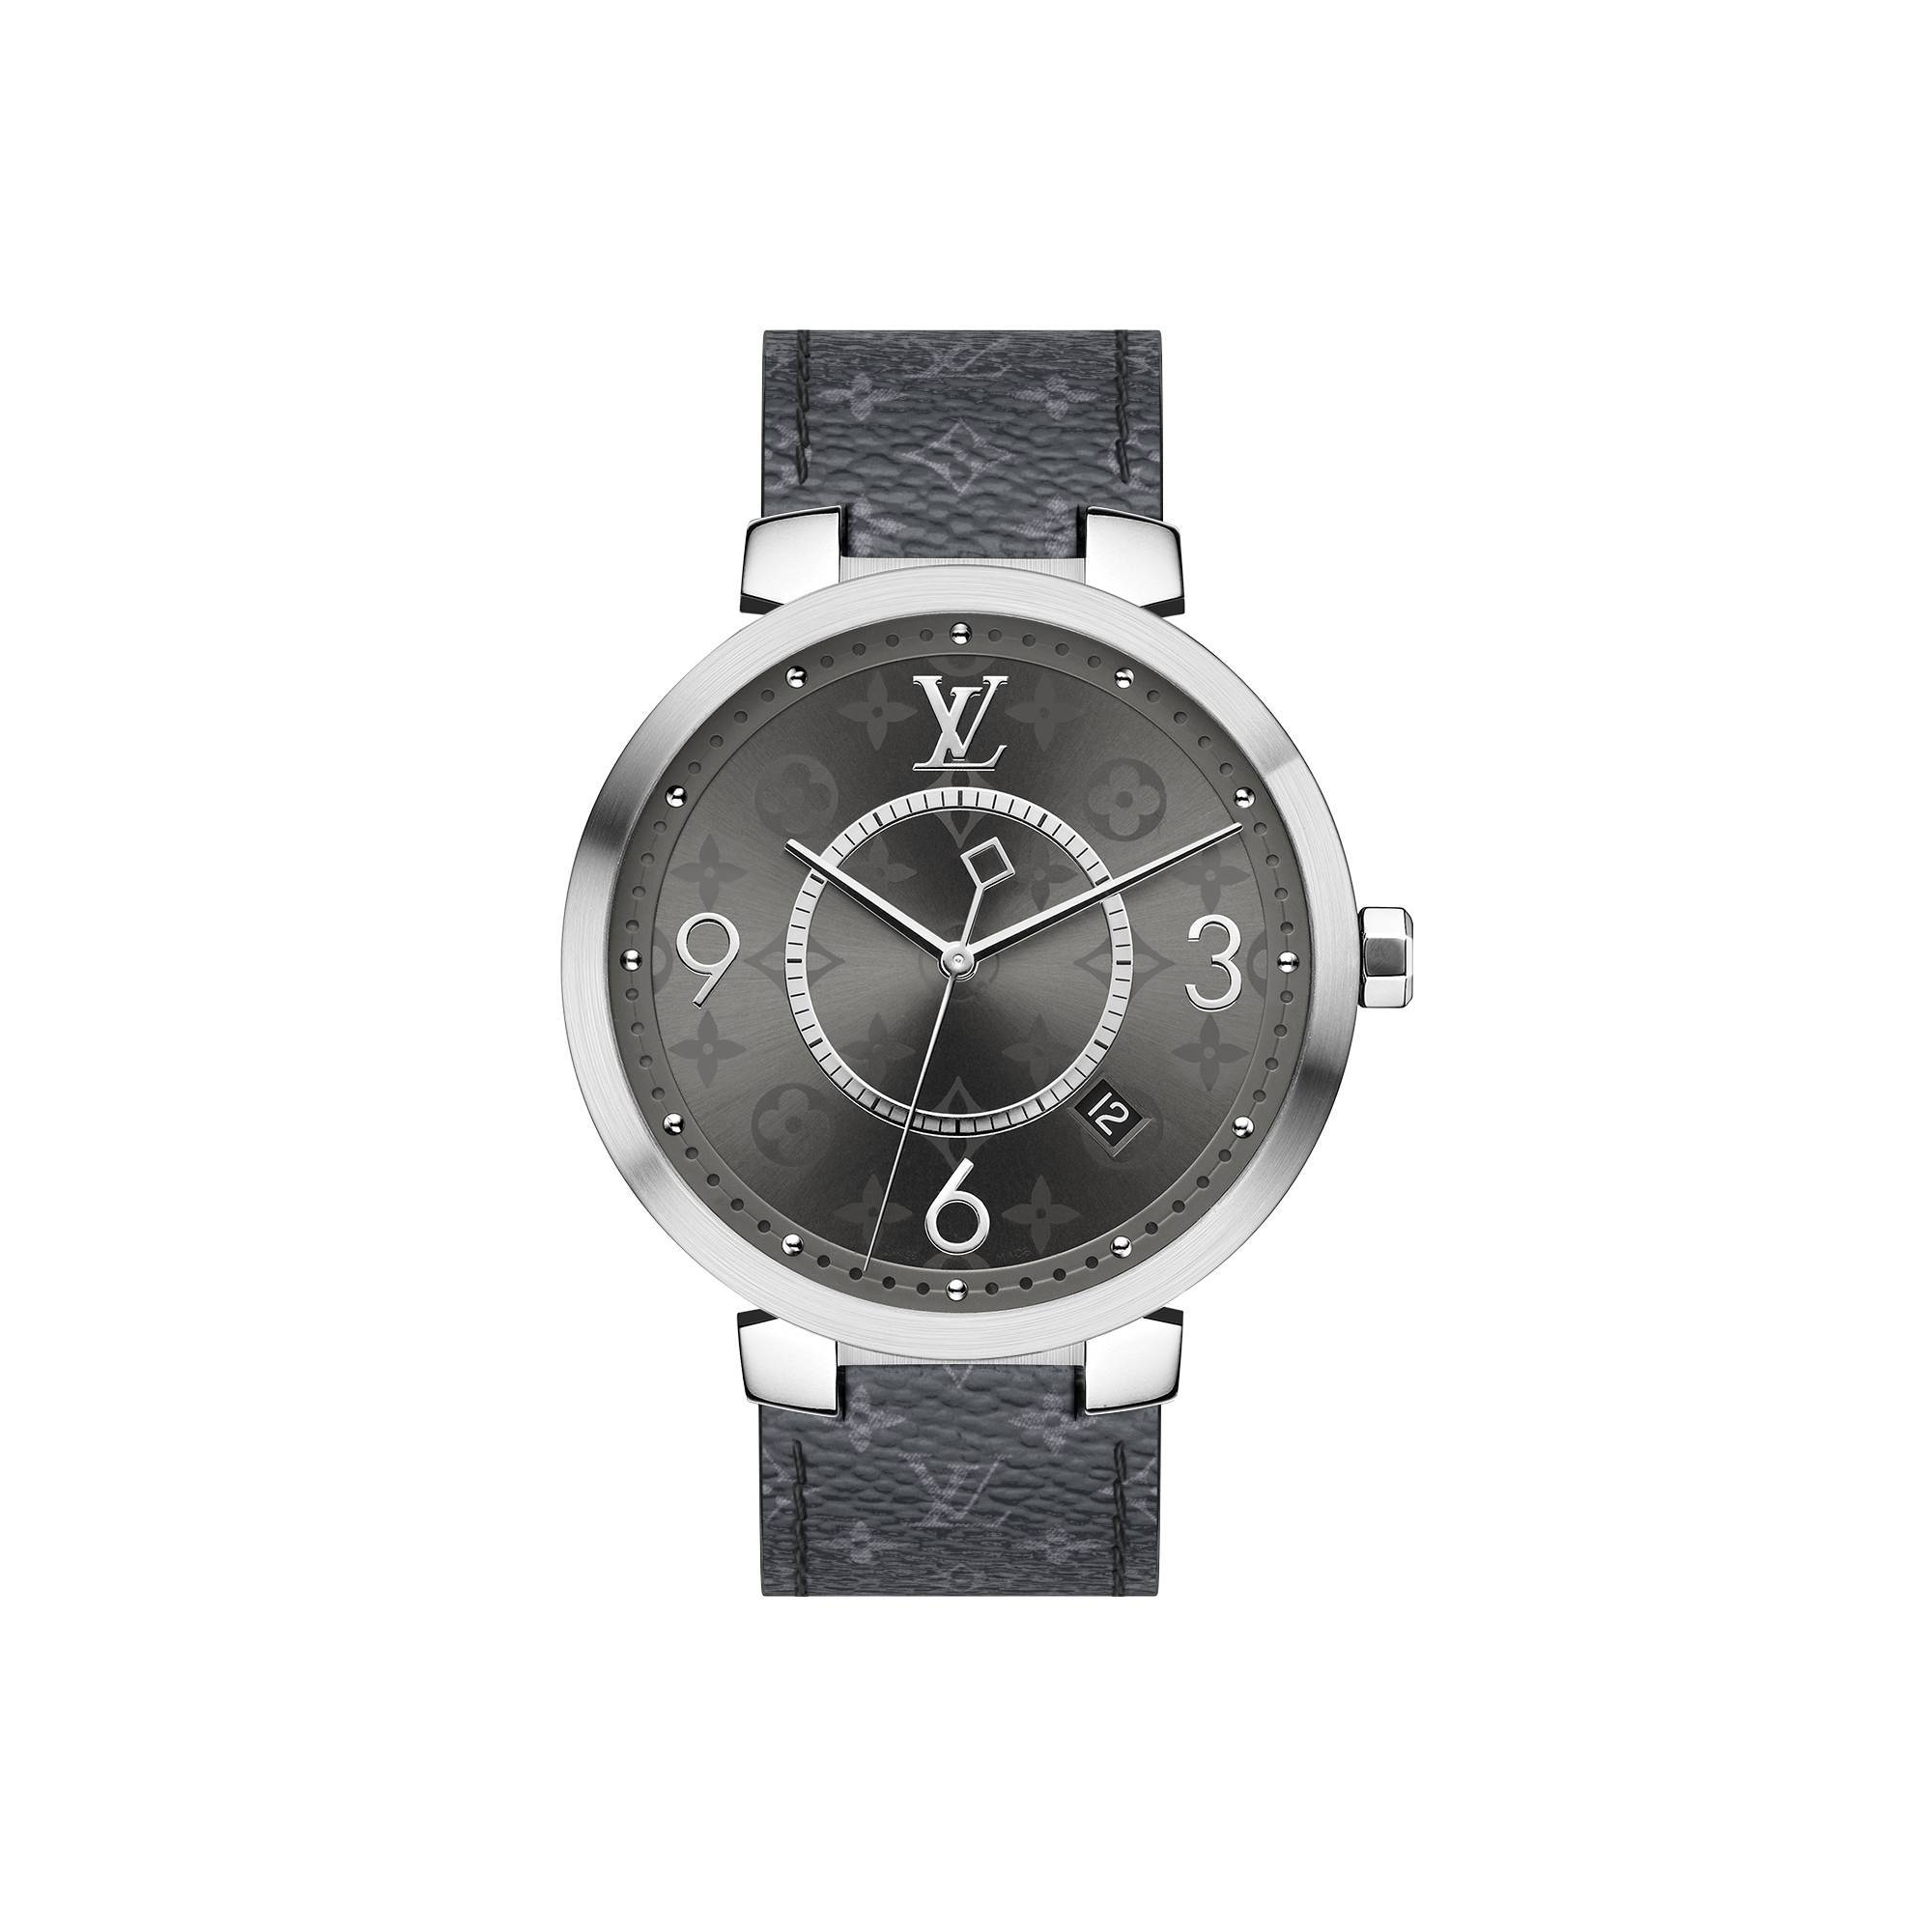 10 Timepieces by Louis Vuitton for Men with a Luxury Lifestyle Louis Vuitton 10 Timepieces by Louis Vuitton for Men with a Luxury Lifestyle 10 Timepieces by Louis Vuitton for Men with a Luxury Lifestyle 7